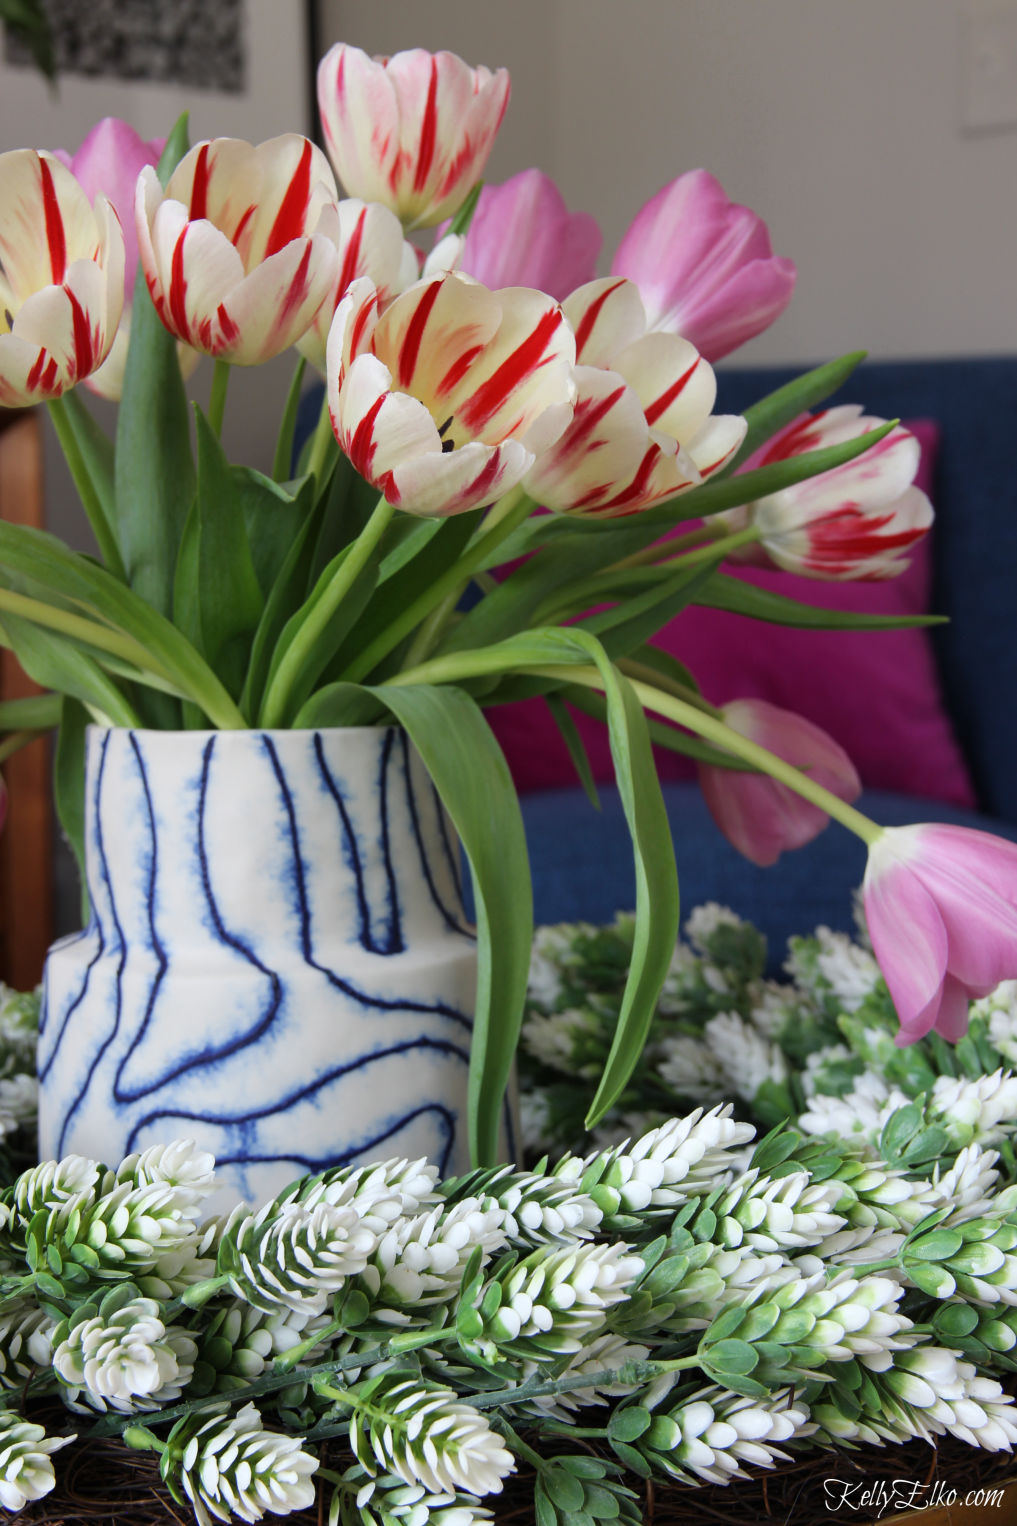 Love these pink and white striped tulips kellyelko.com #tulips #flowers #centerpiece